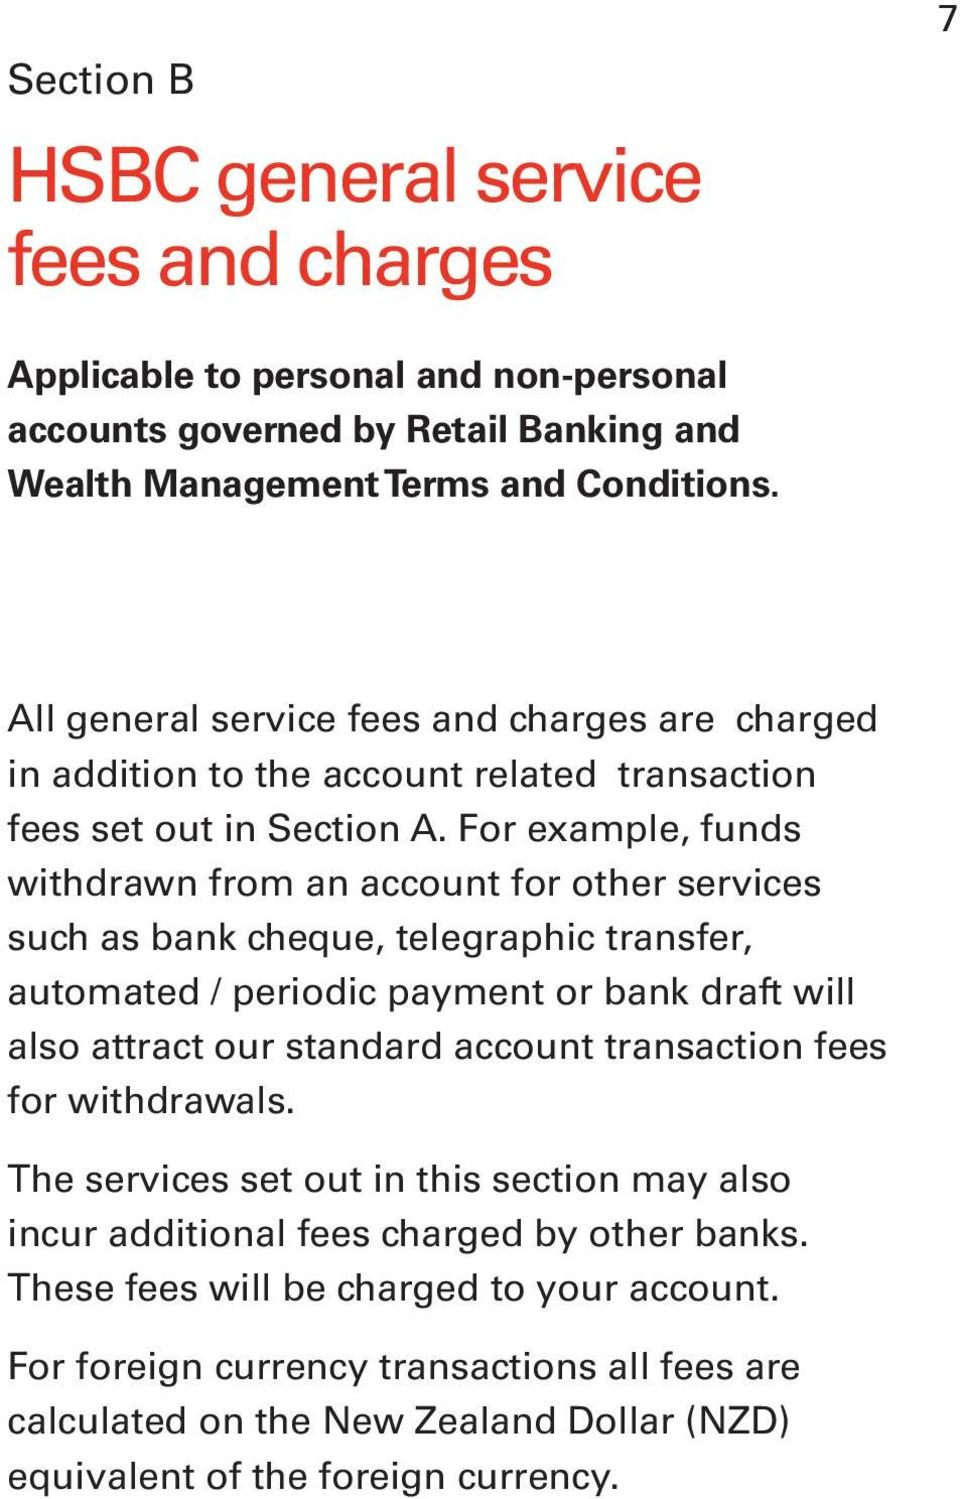 For example, funds withdrawn from an account for other services such as bank cheque, telegraphic transfer, automated / periodic payment or bank draft will also attract our standard account